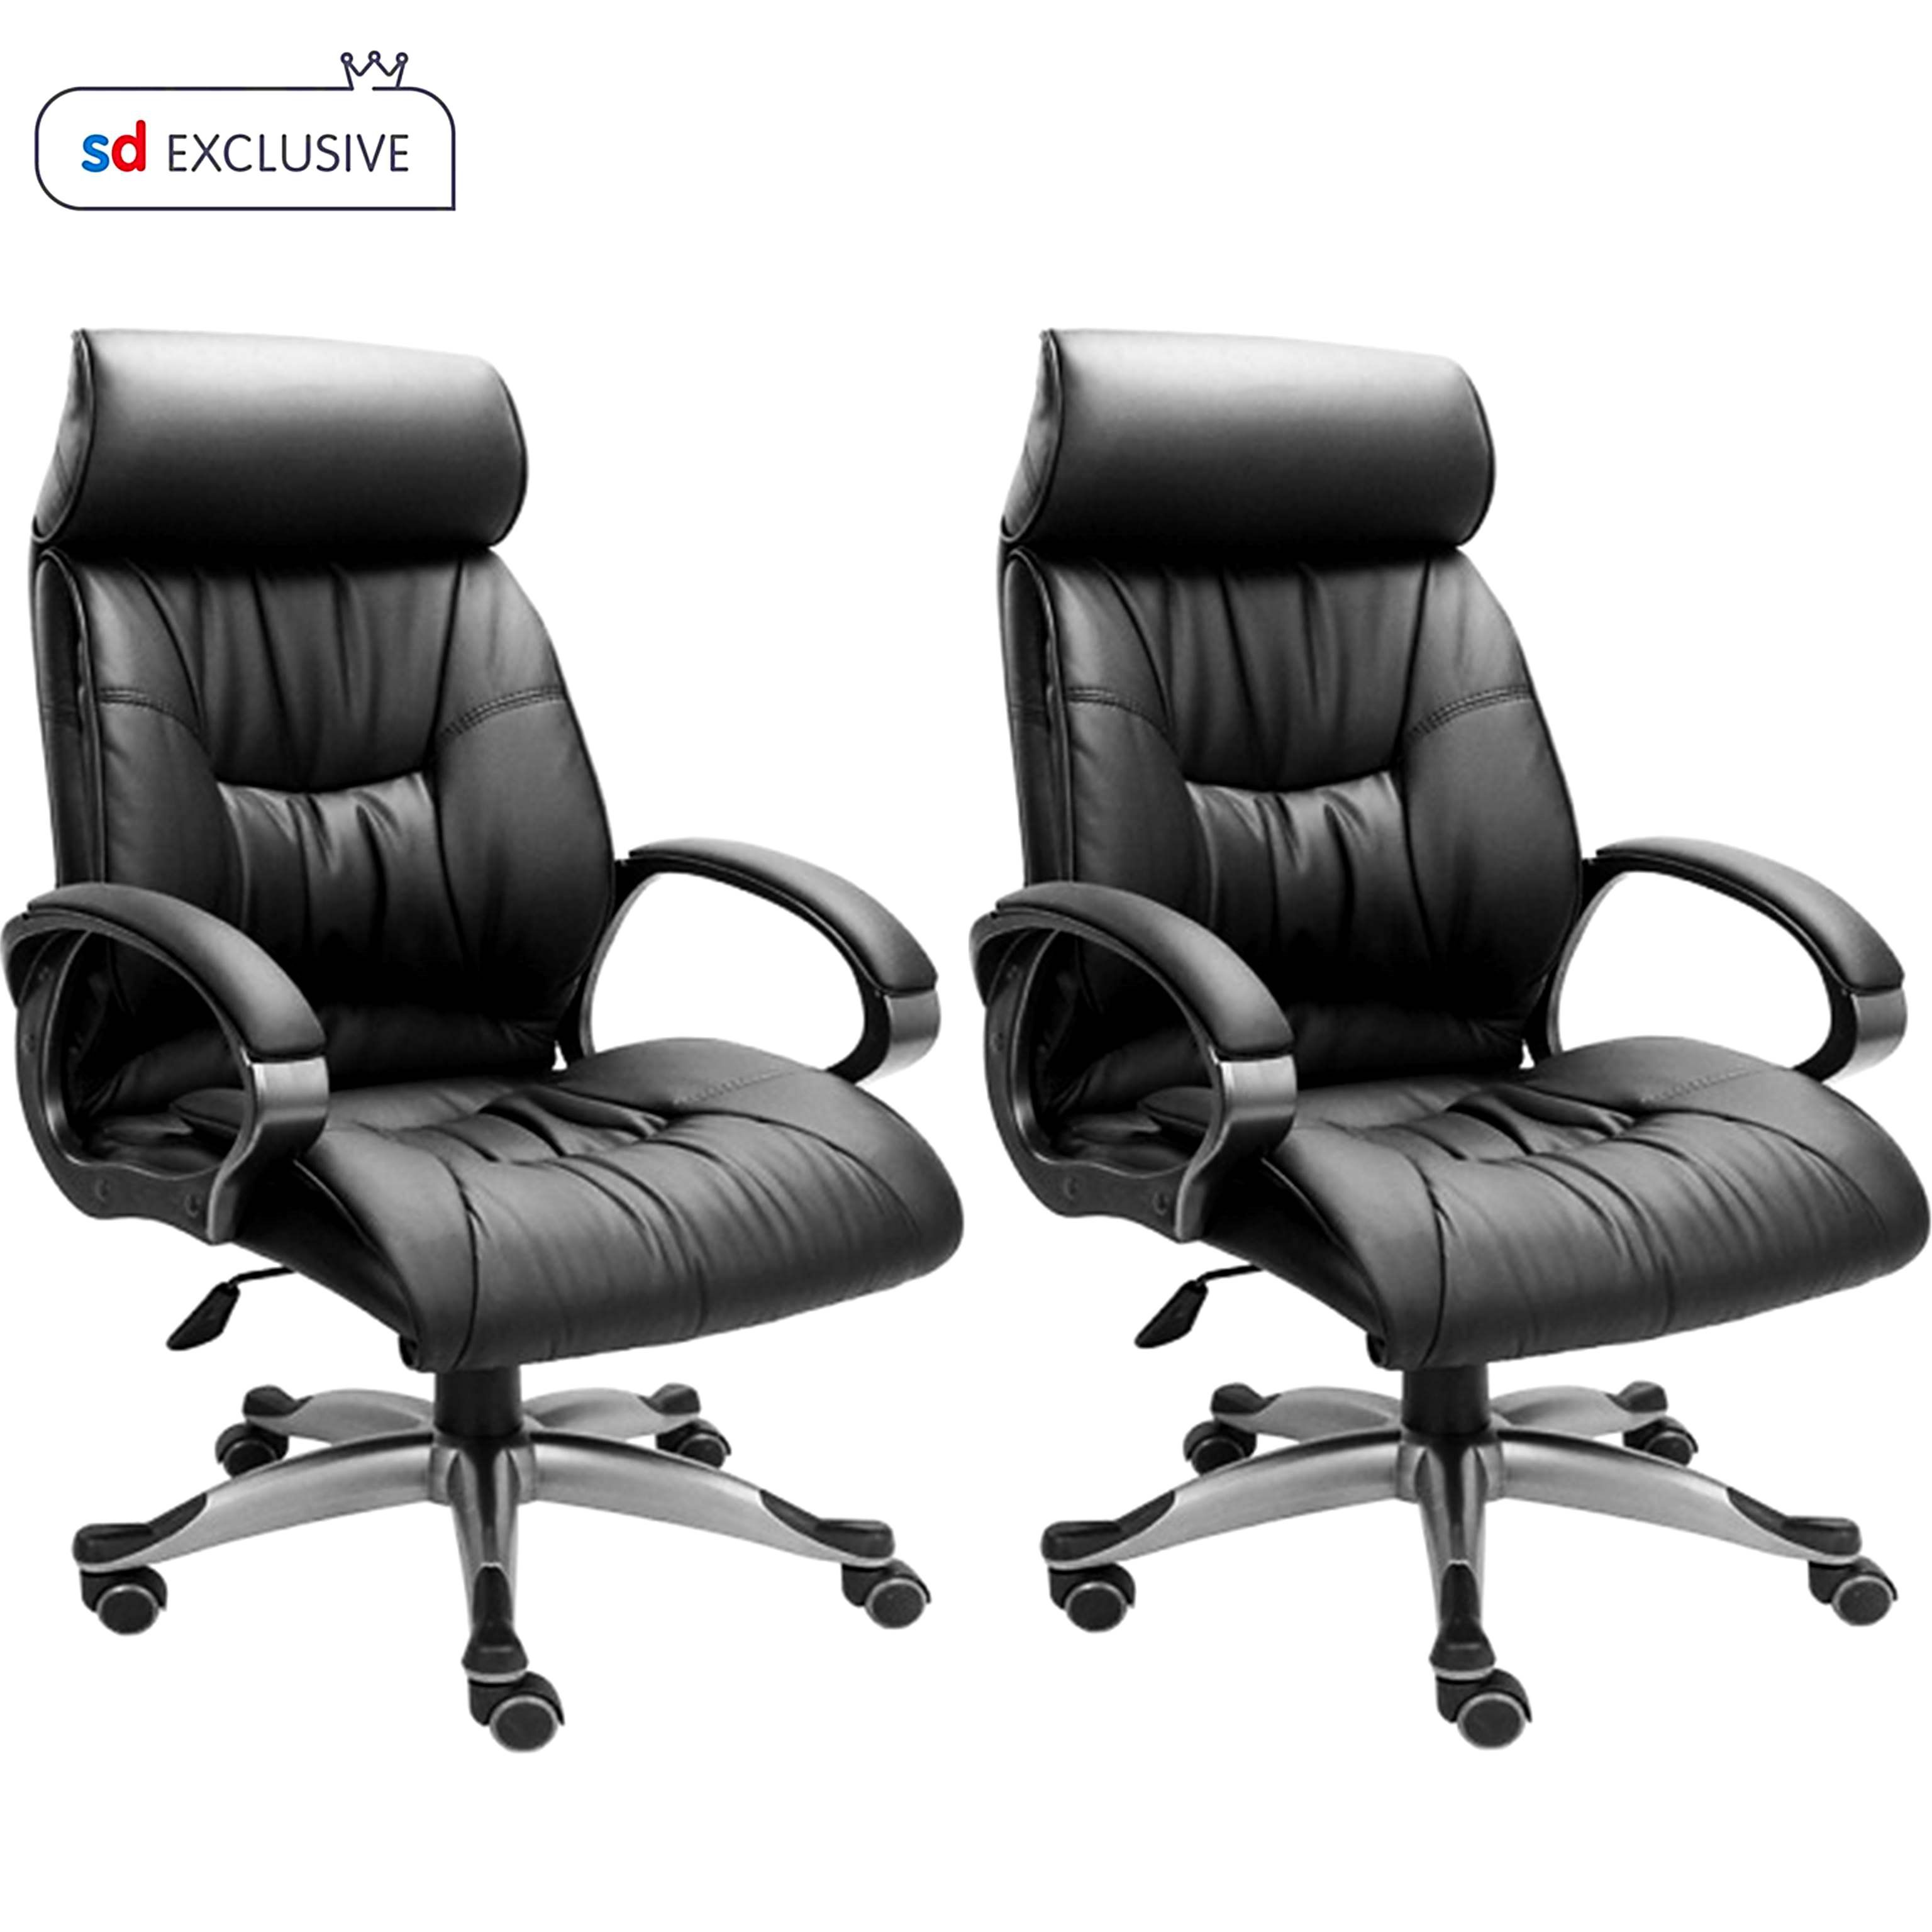 Buy Office Chairs Online Buy 1 High Back Leatherette Office Chair Get 1 Free Buy